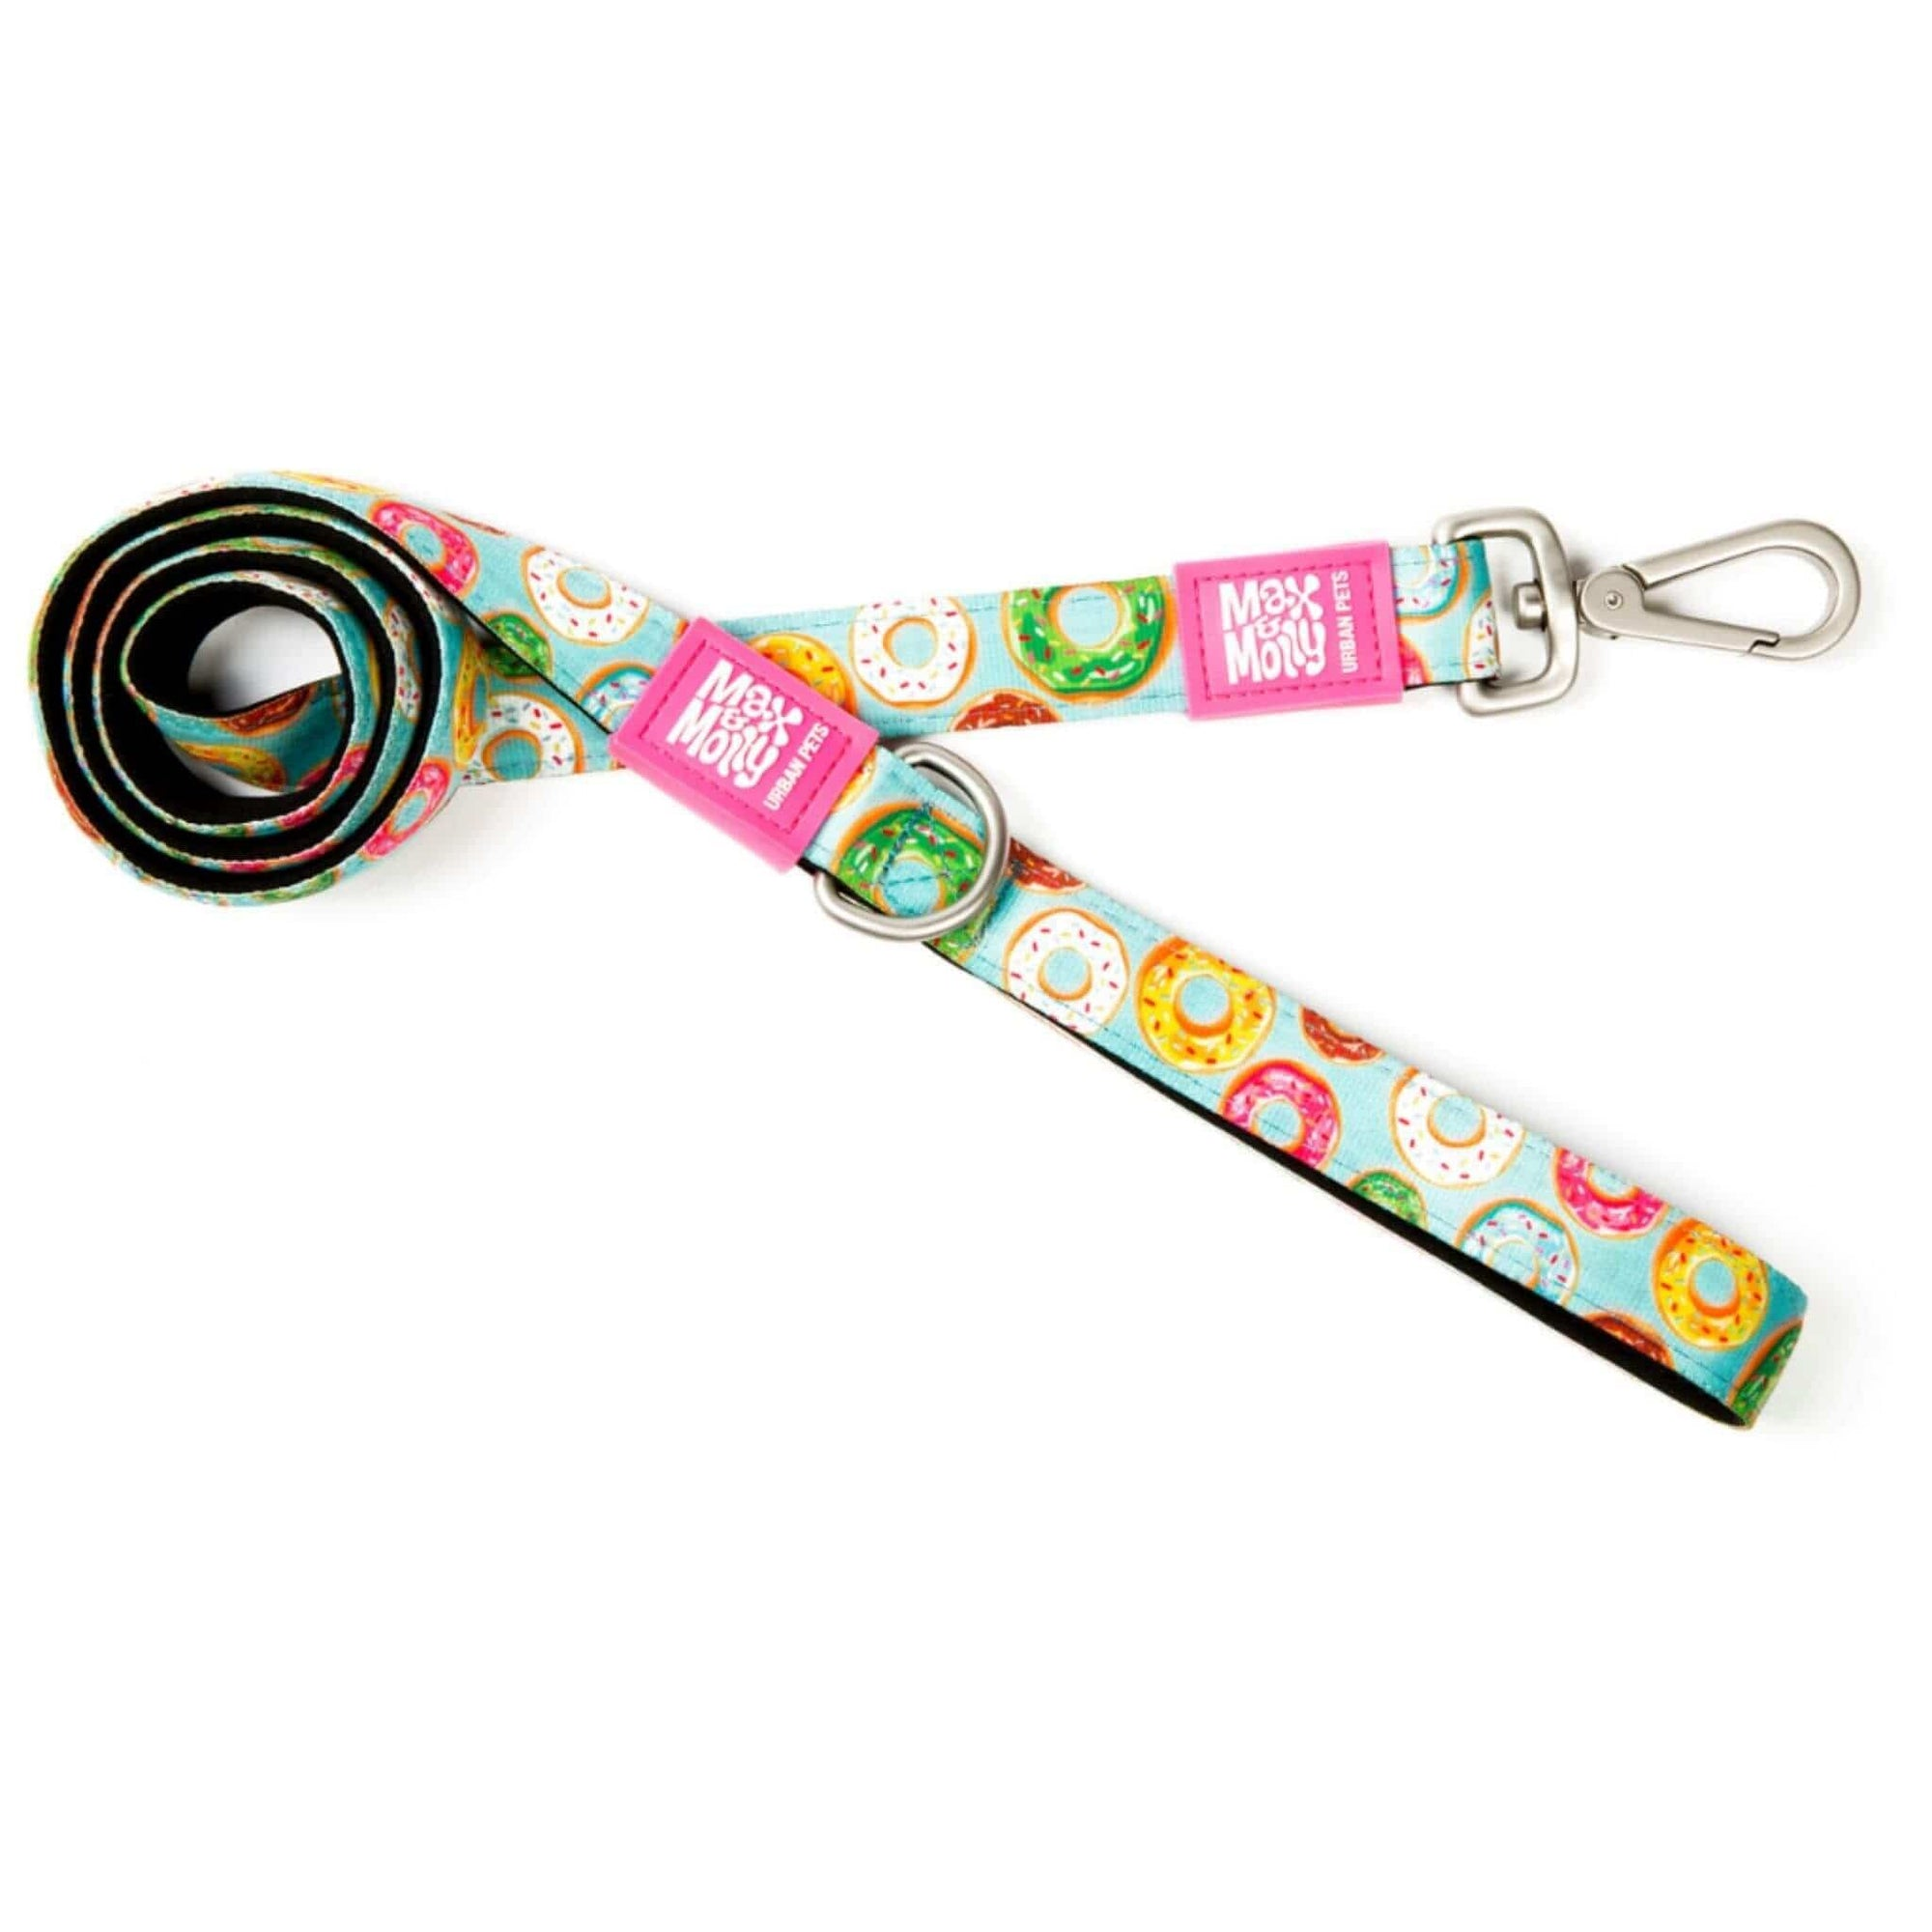 Max & Molly Small Dog Leash - Donuts